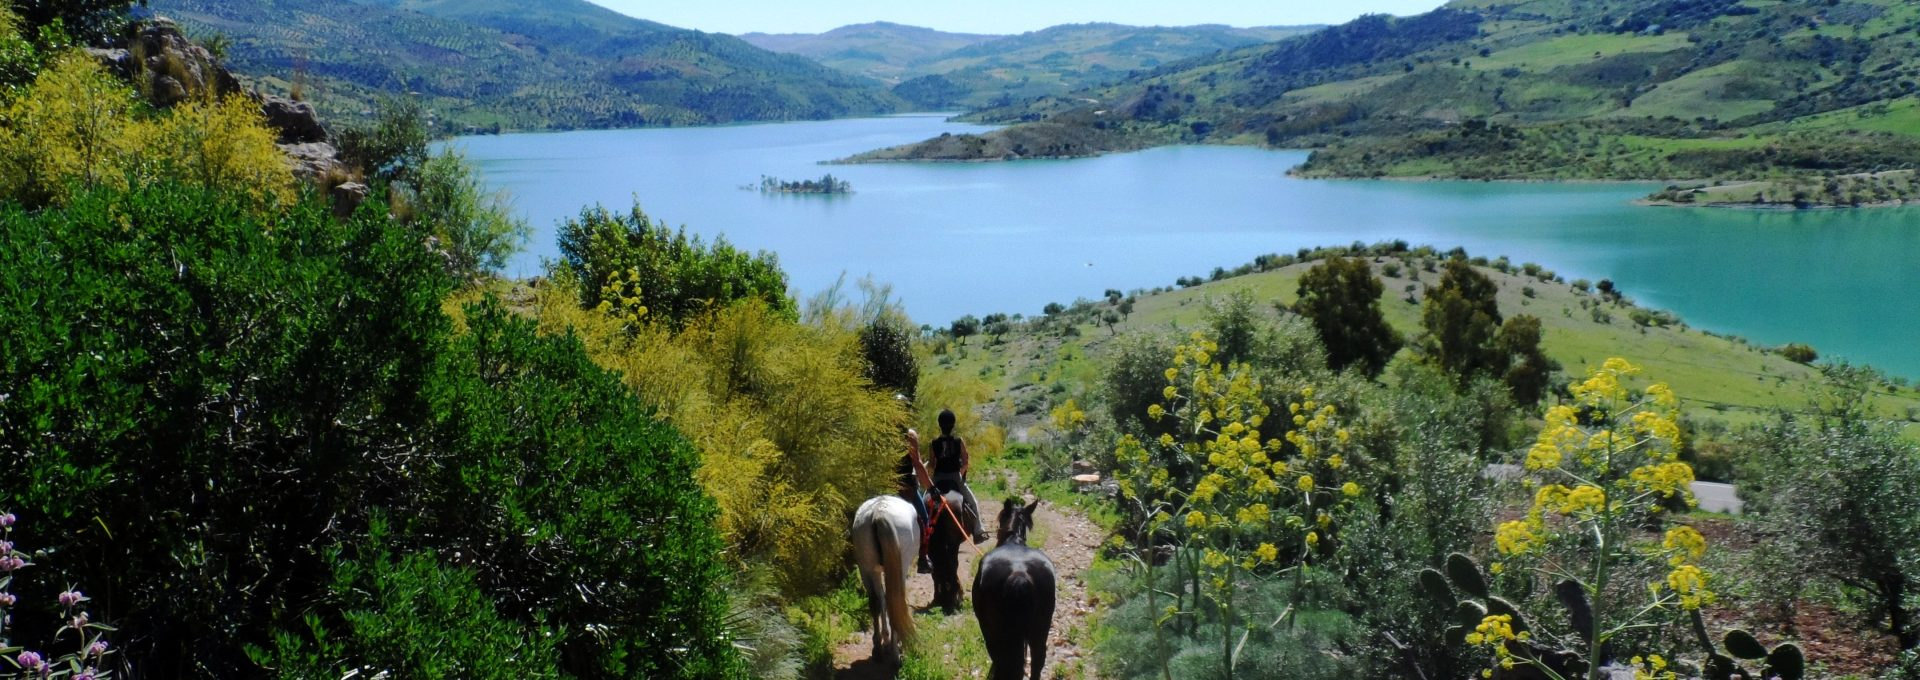 Reiten in Andalusien